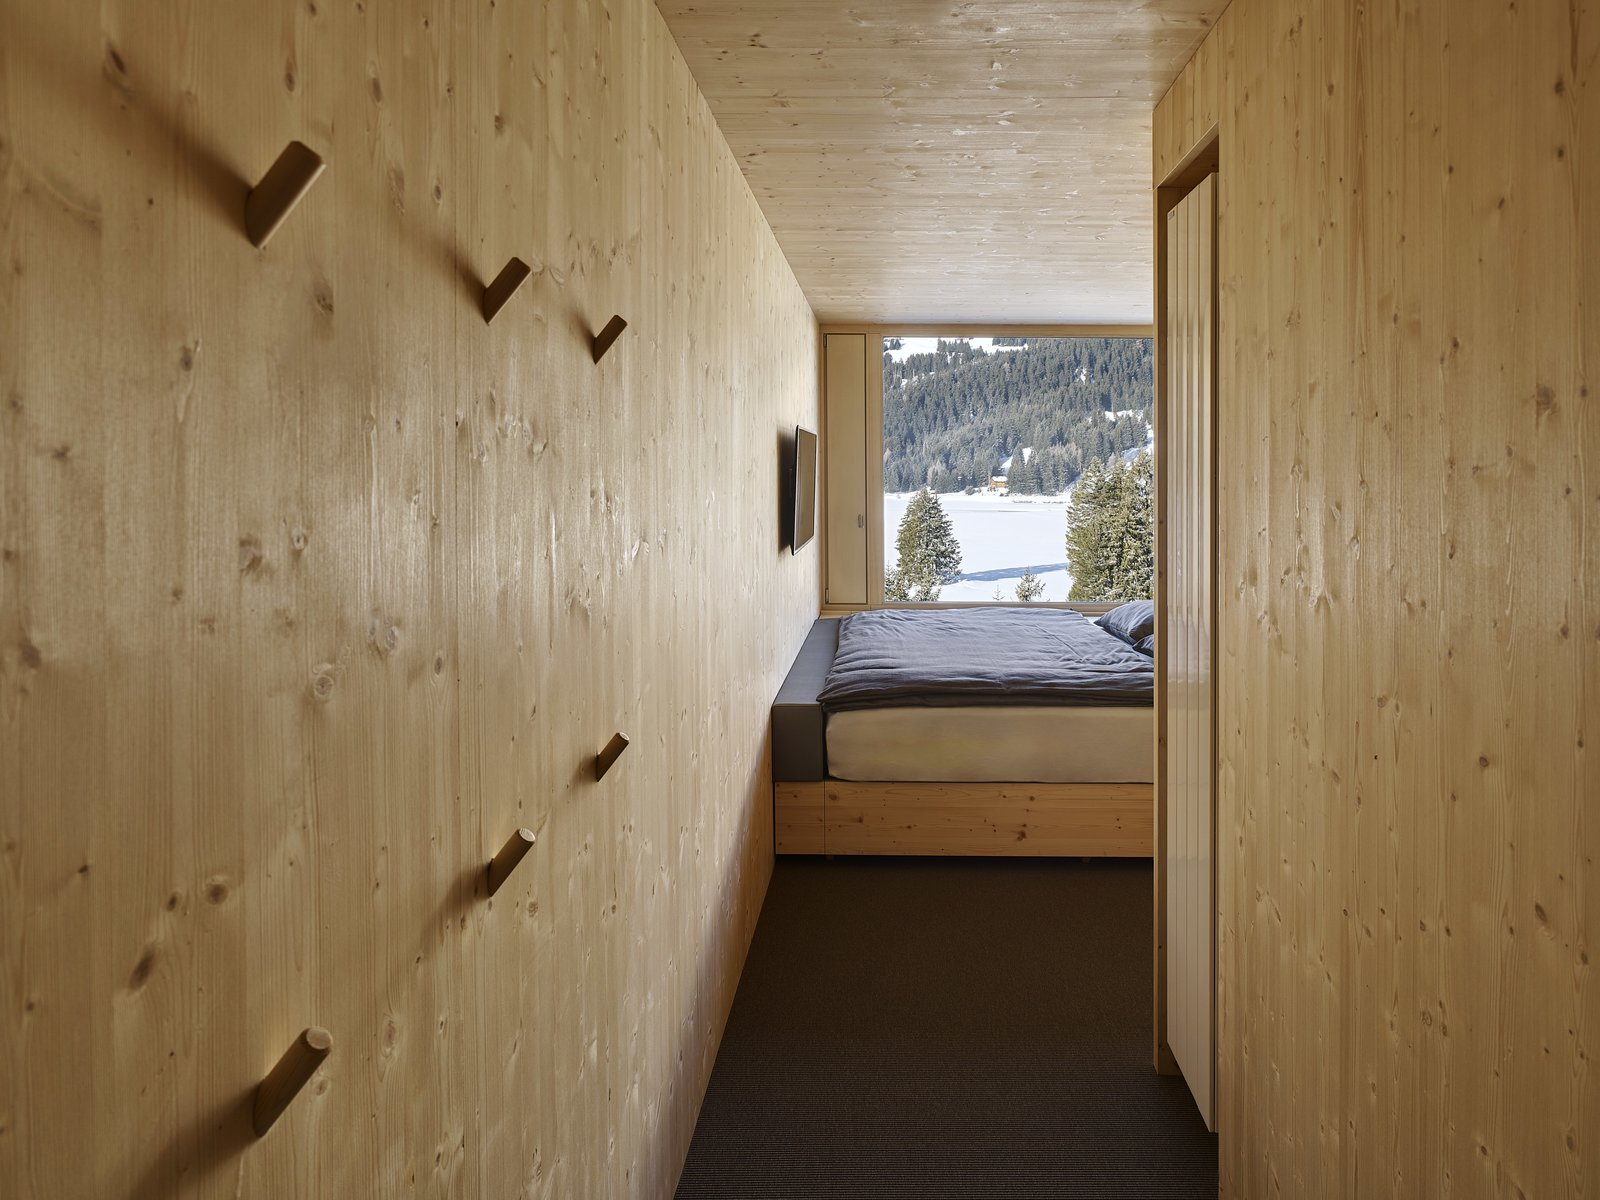 The ceilings, floors, and walls of the rooms are constructed from natural, unfinished plywood.